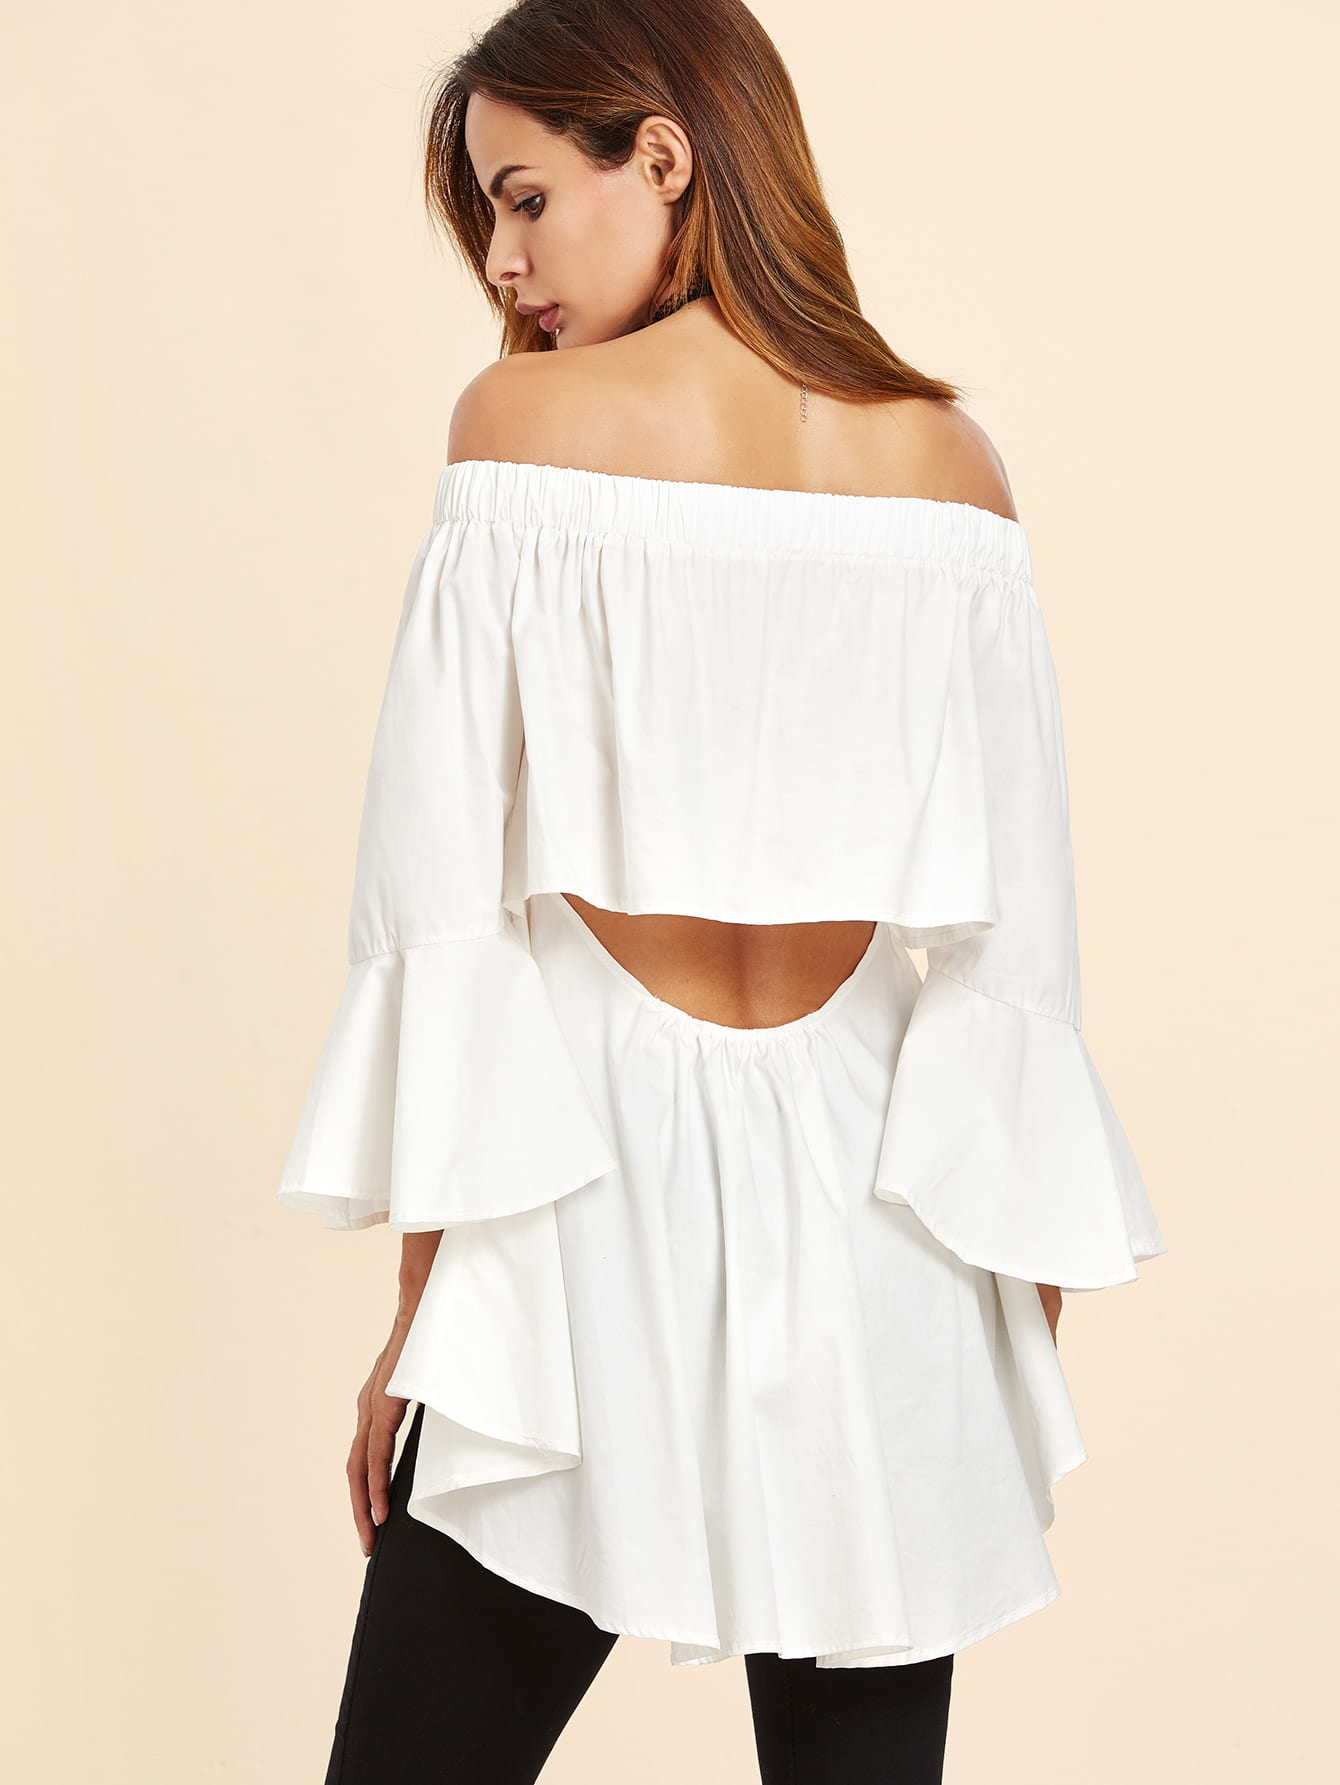 White Off The Shoulder Open Back High Low TopWhite Off The Shoulder Open Back High Low Top<br><br>color: White<br>size: one-size